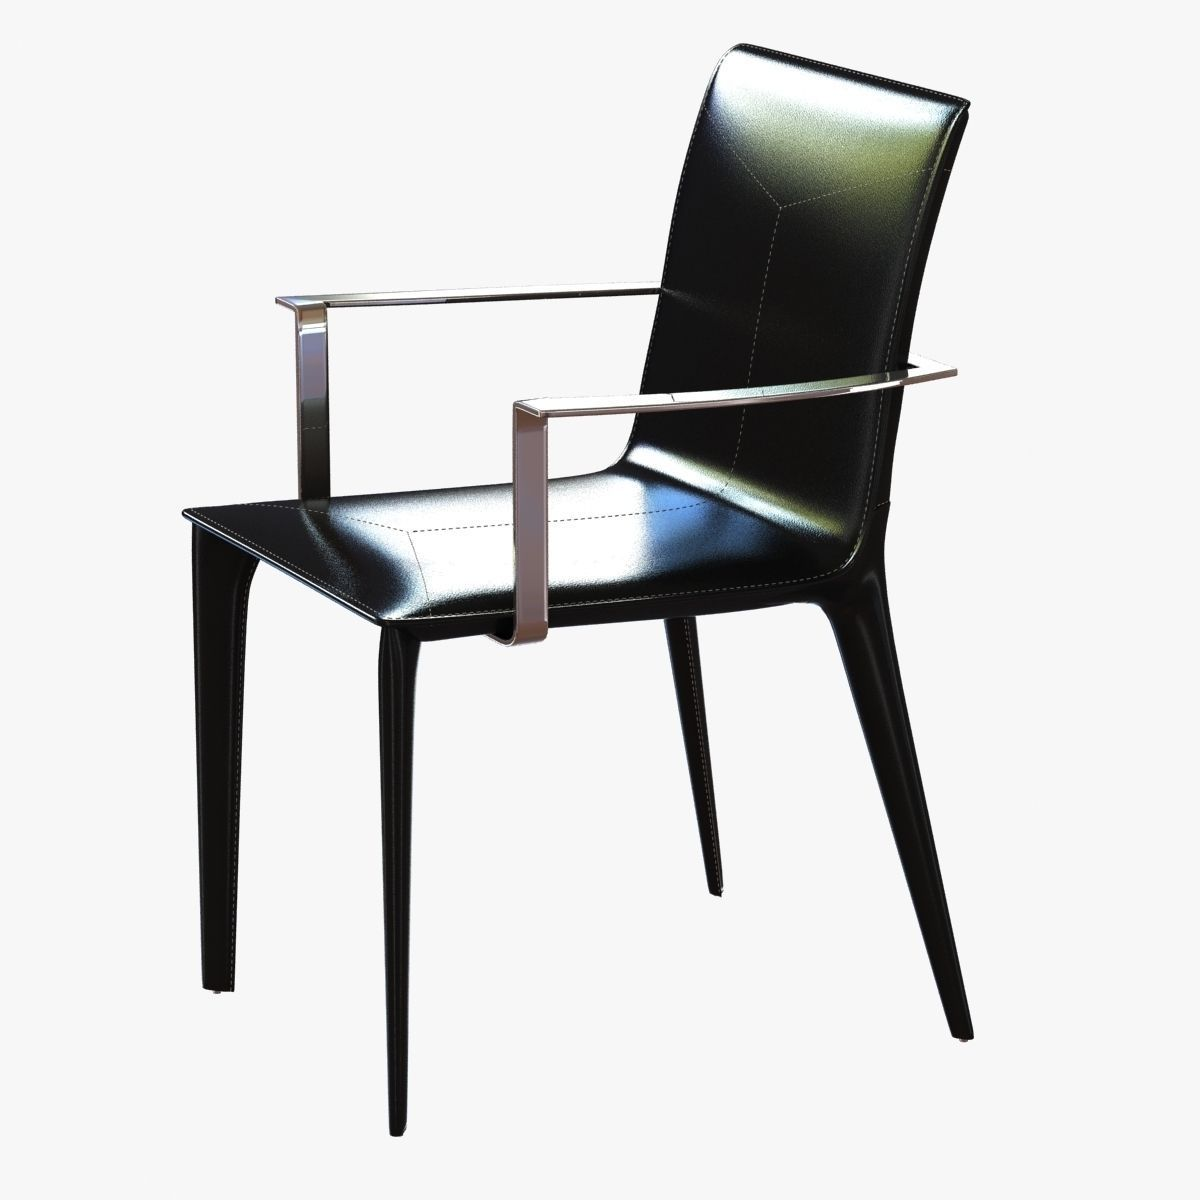 3D holly hunt adriatic dining arm chair | CGTrader